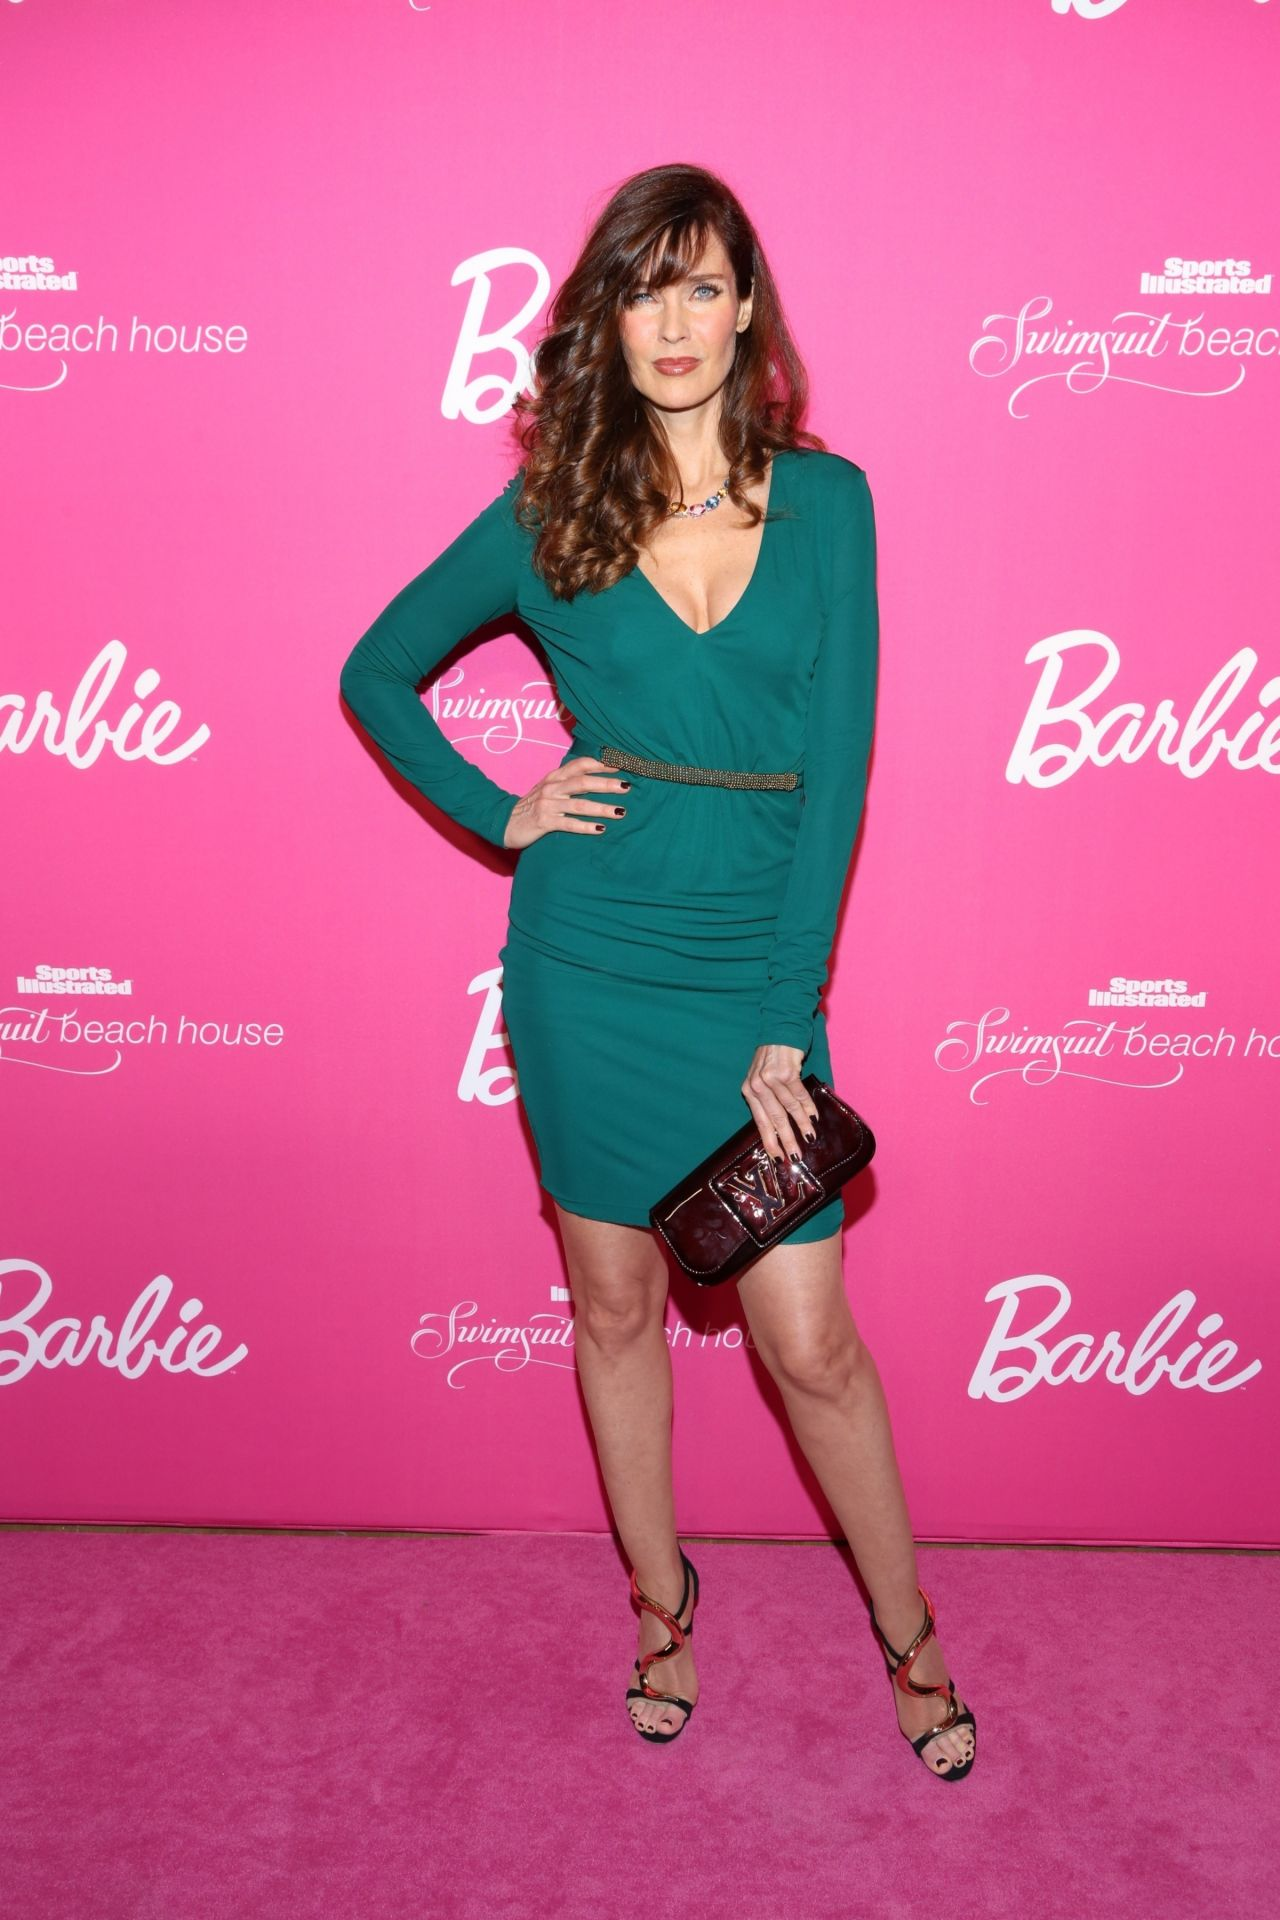 MILFs - El hilo de las maduritas - Página 6 Carol-alt-si-swimsuit-50th-anniversary-party-february-2014-part-2-_19